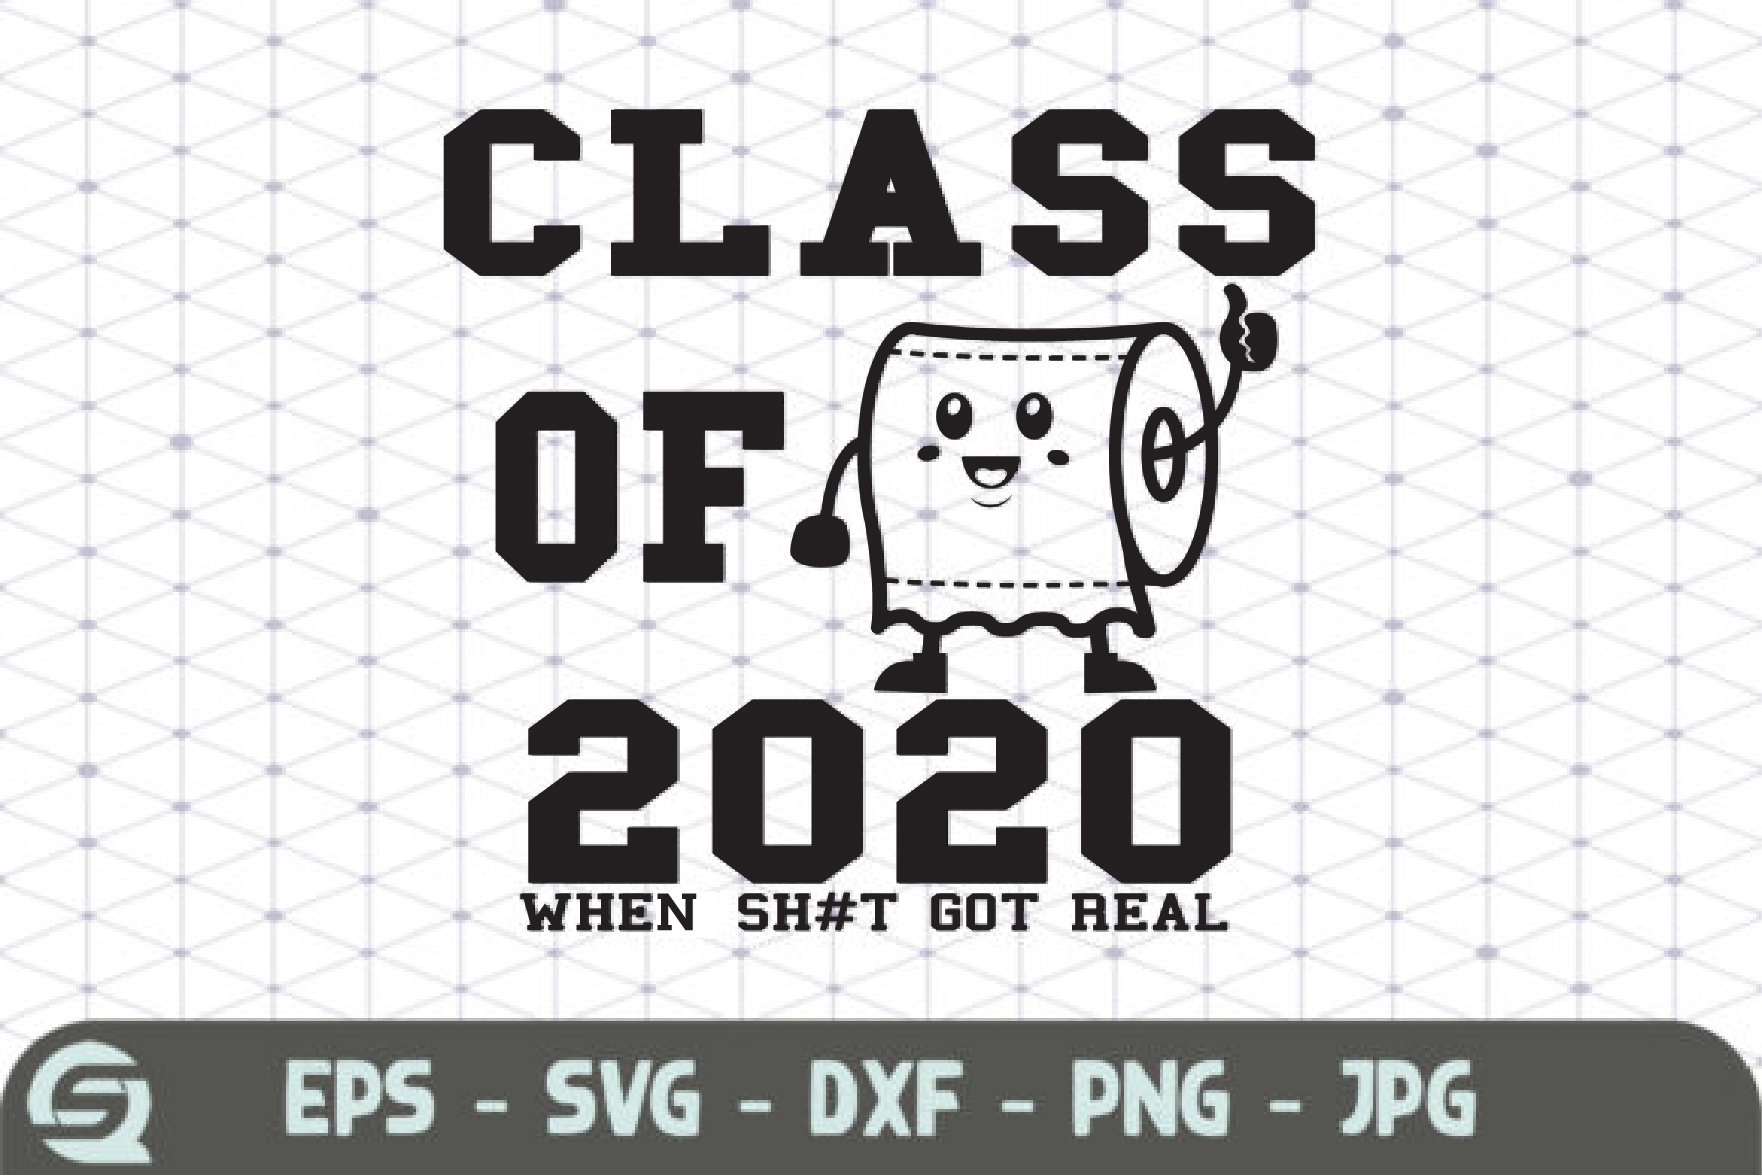 Download Free Class Of 2020 When Sh T Gets Real 1 Graphic By Crafty Files for Cricut Explore, Silhouette and other cutting machines.